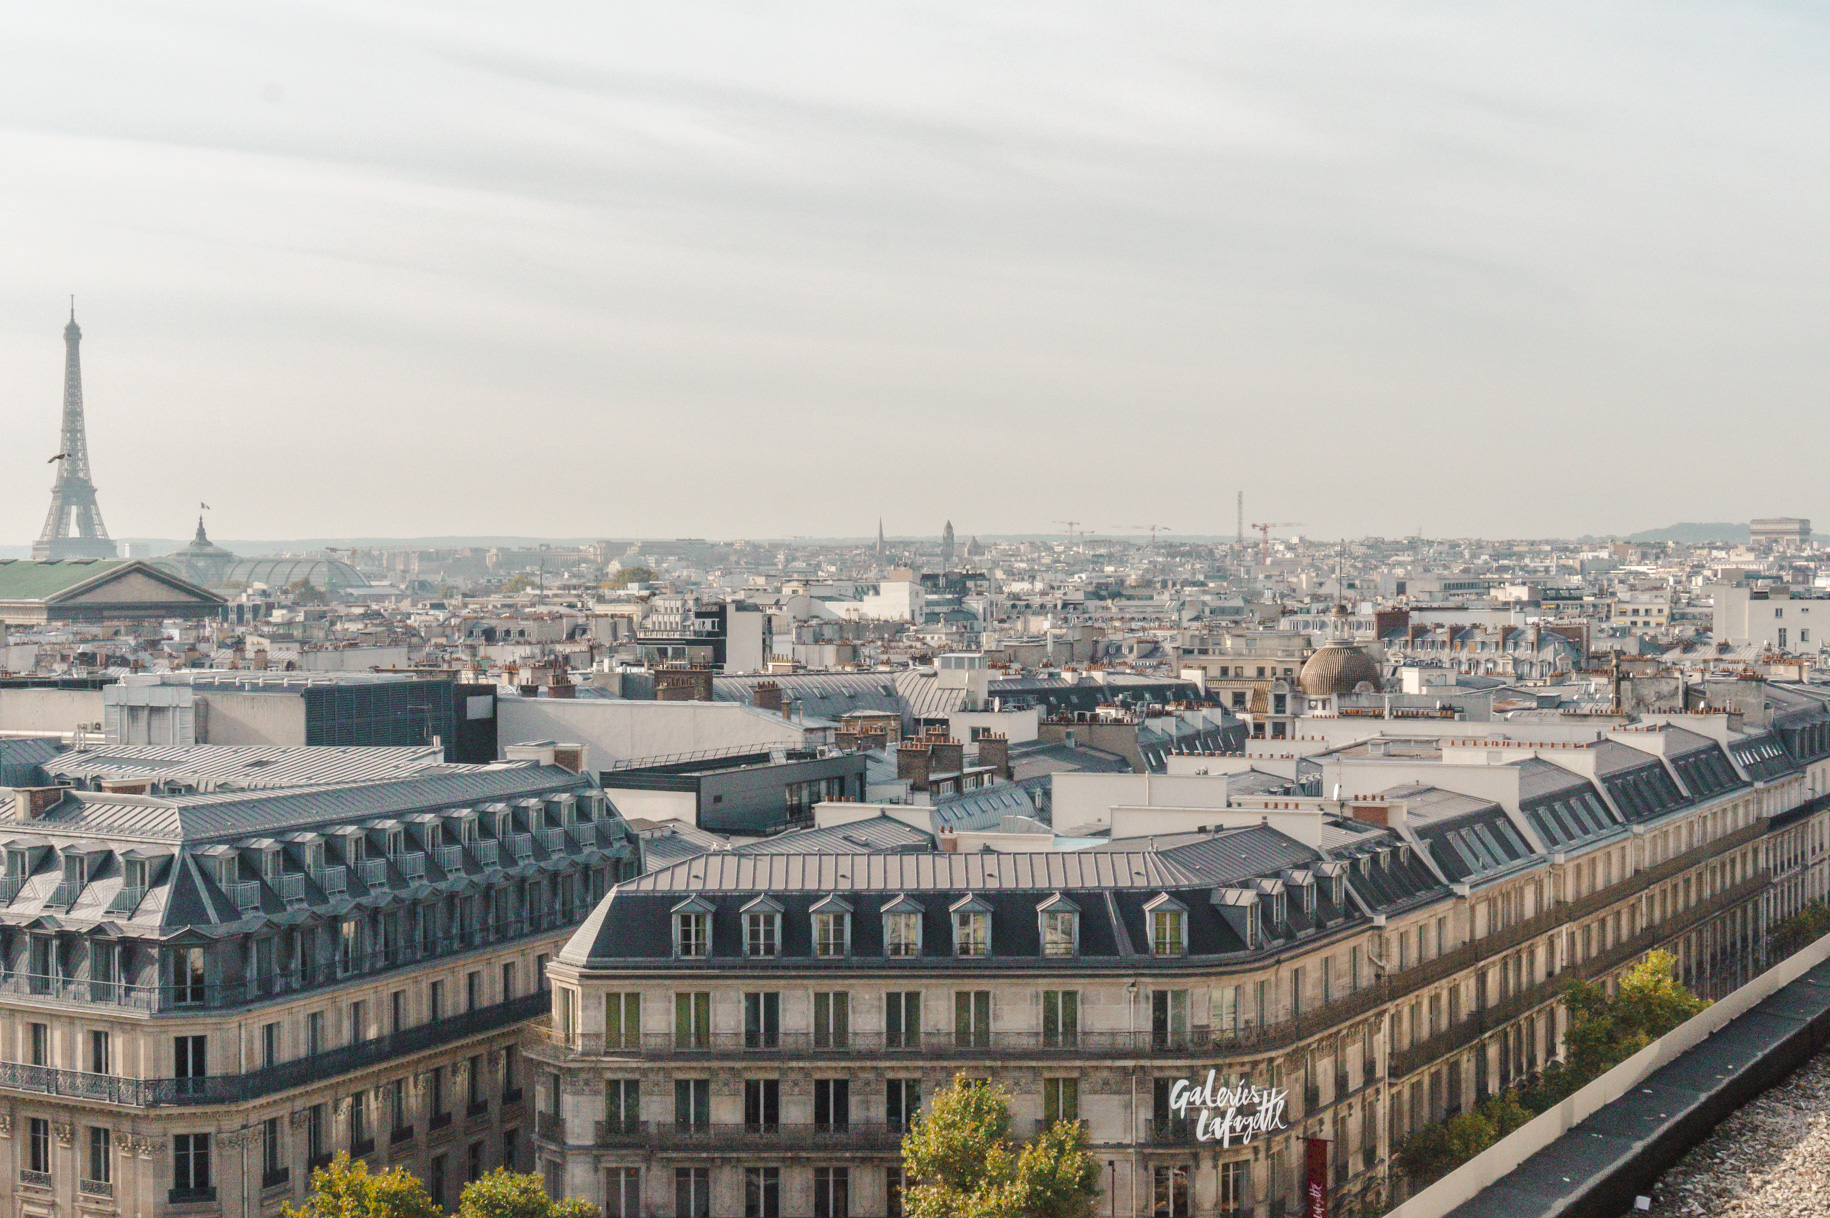 Eiffel Tower views from Galerie Lafayette's rooftop in Paris, one of my favourite solo travel destinations in Europe (and the world).